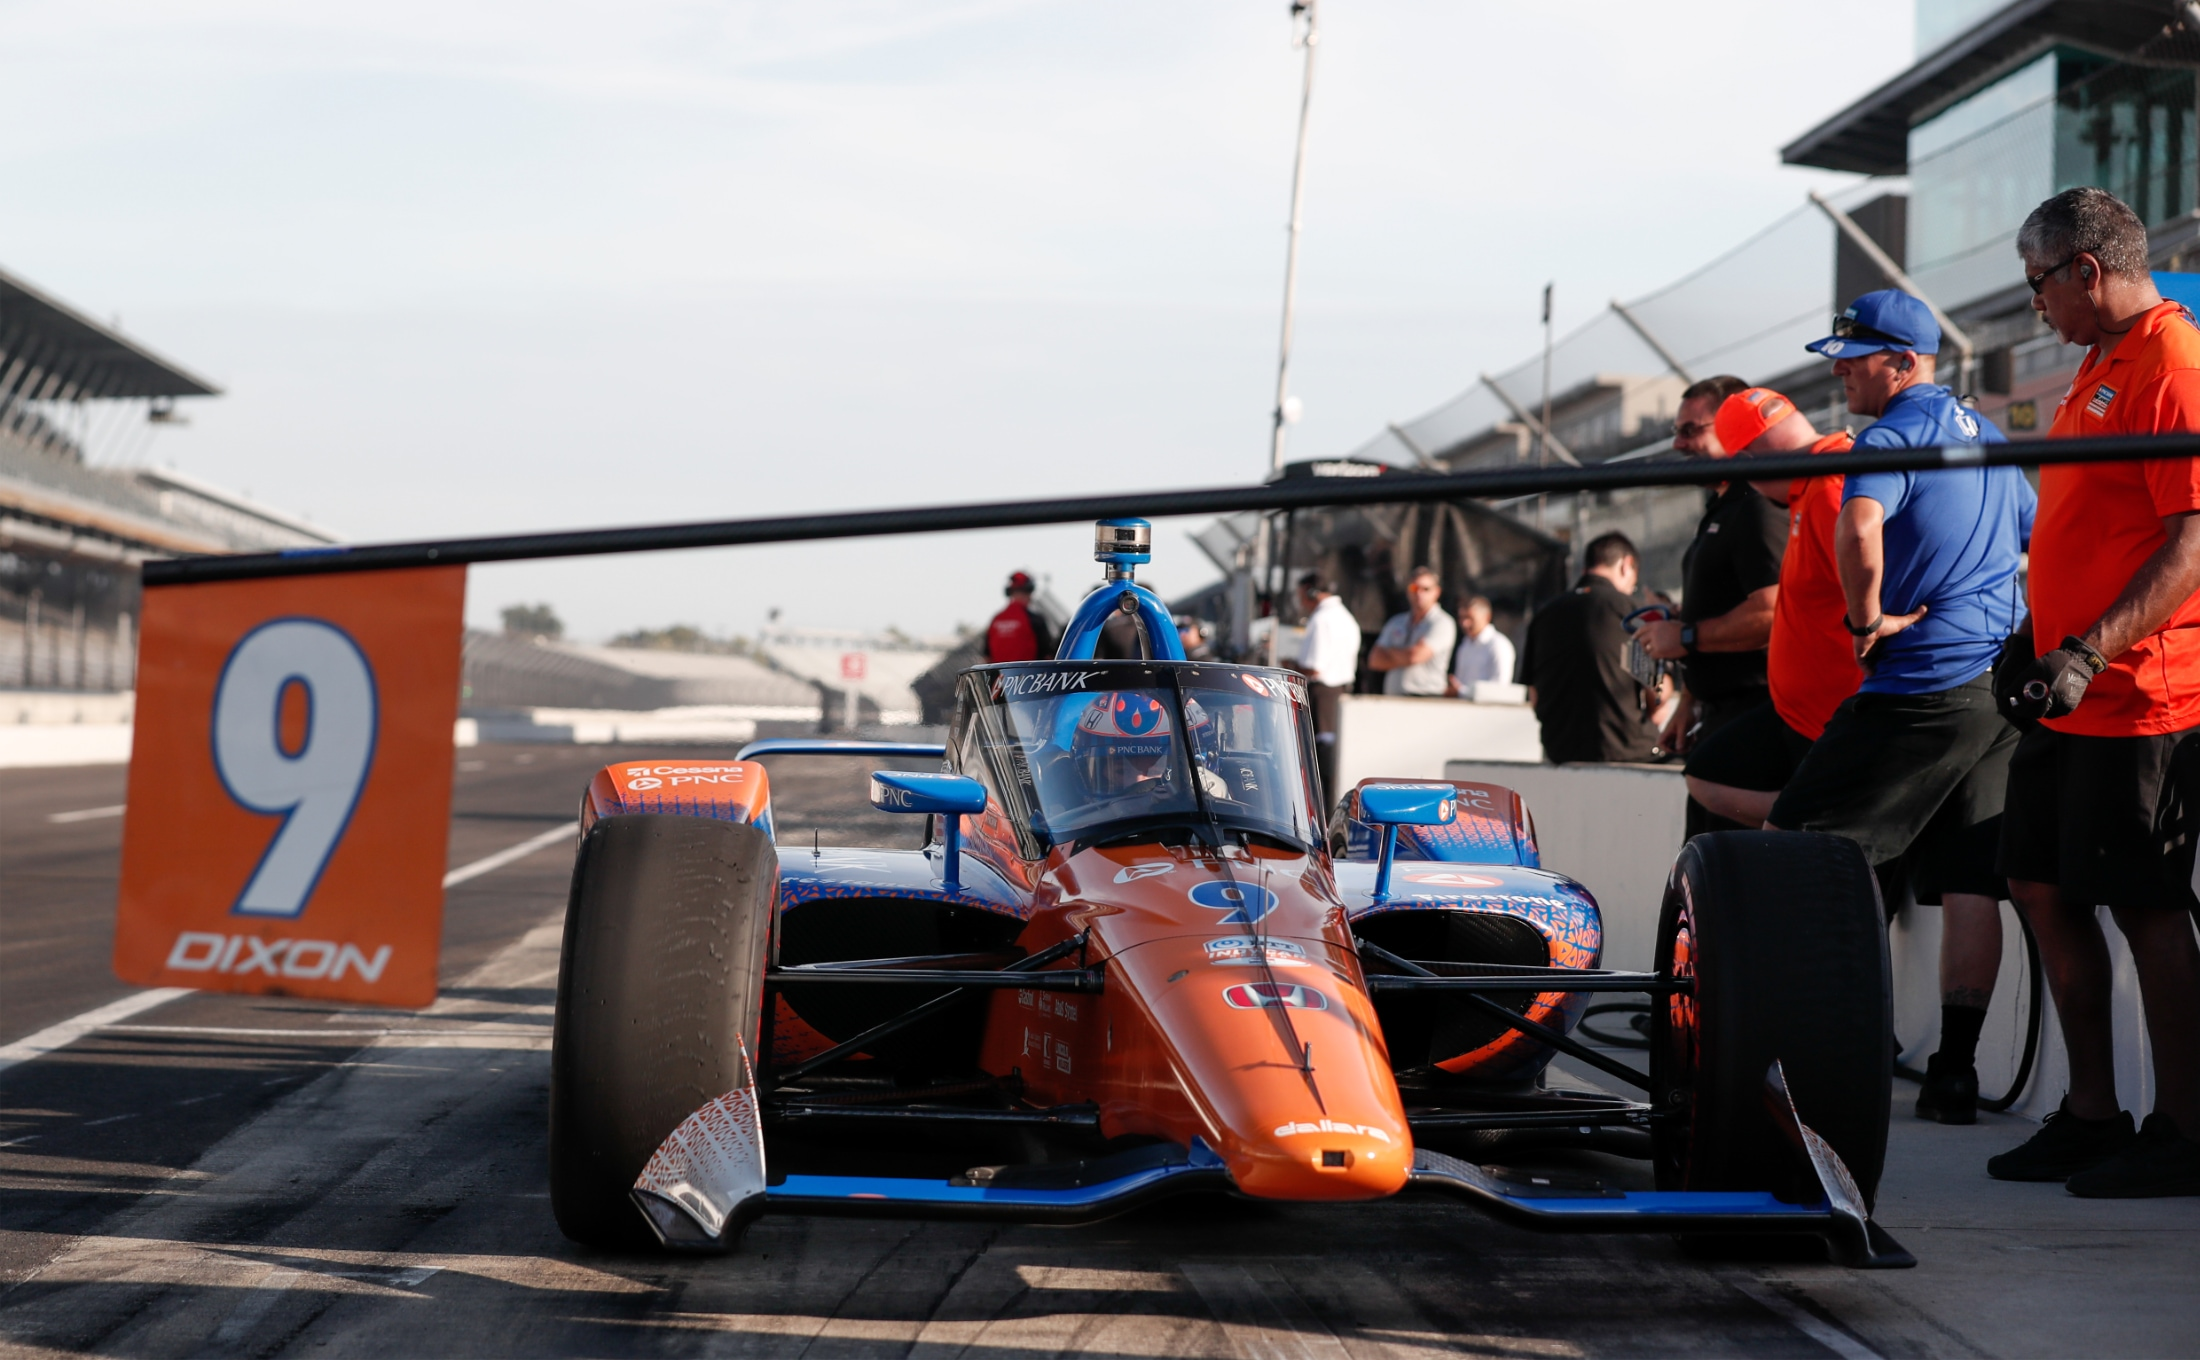 Scott Dixon leaves IMS pits in first Aeroscreen test